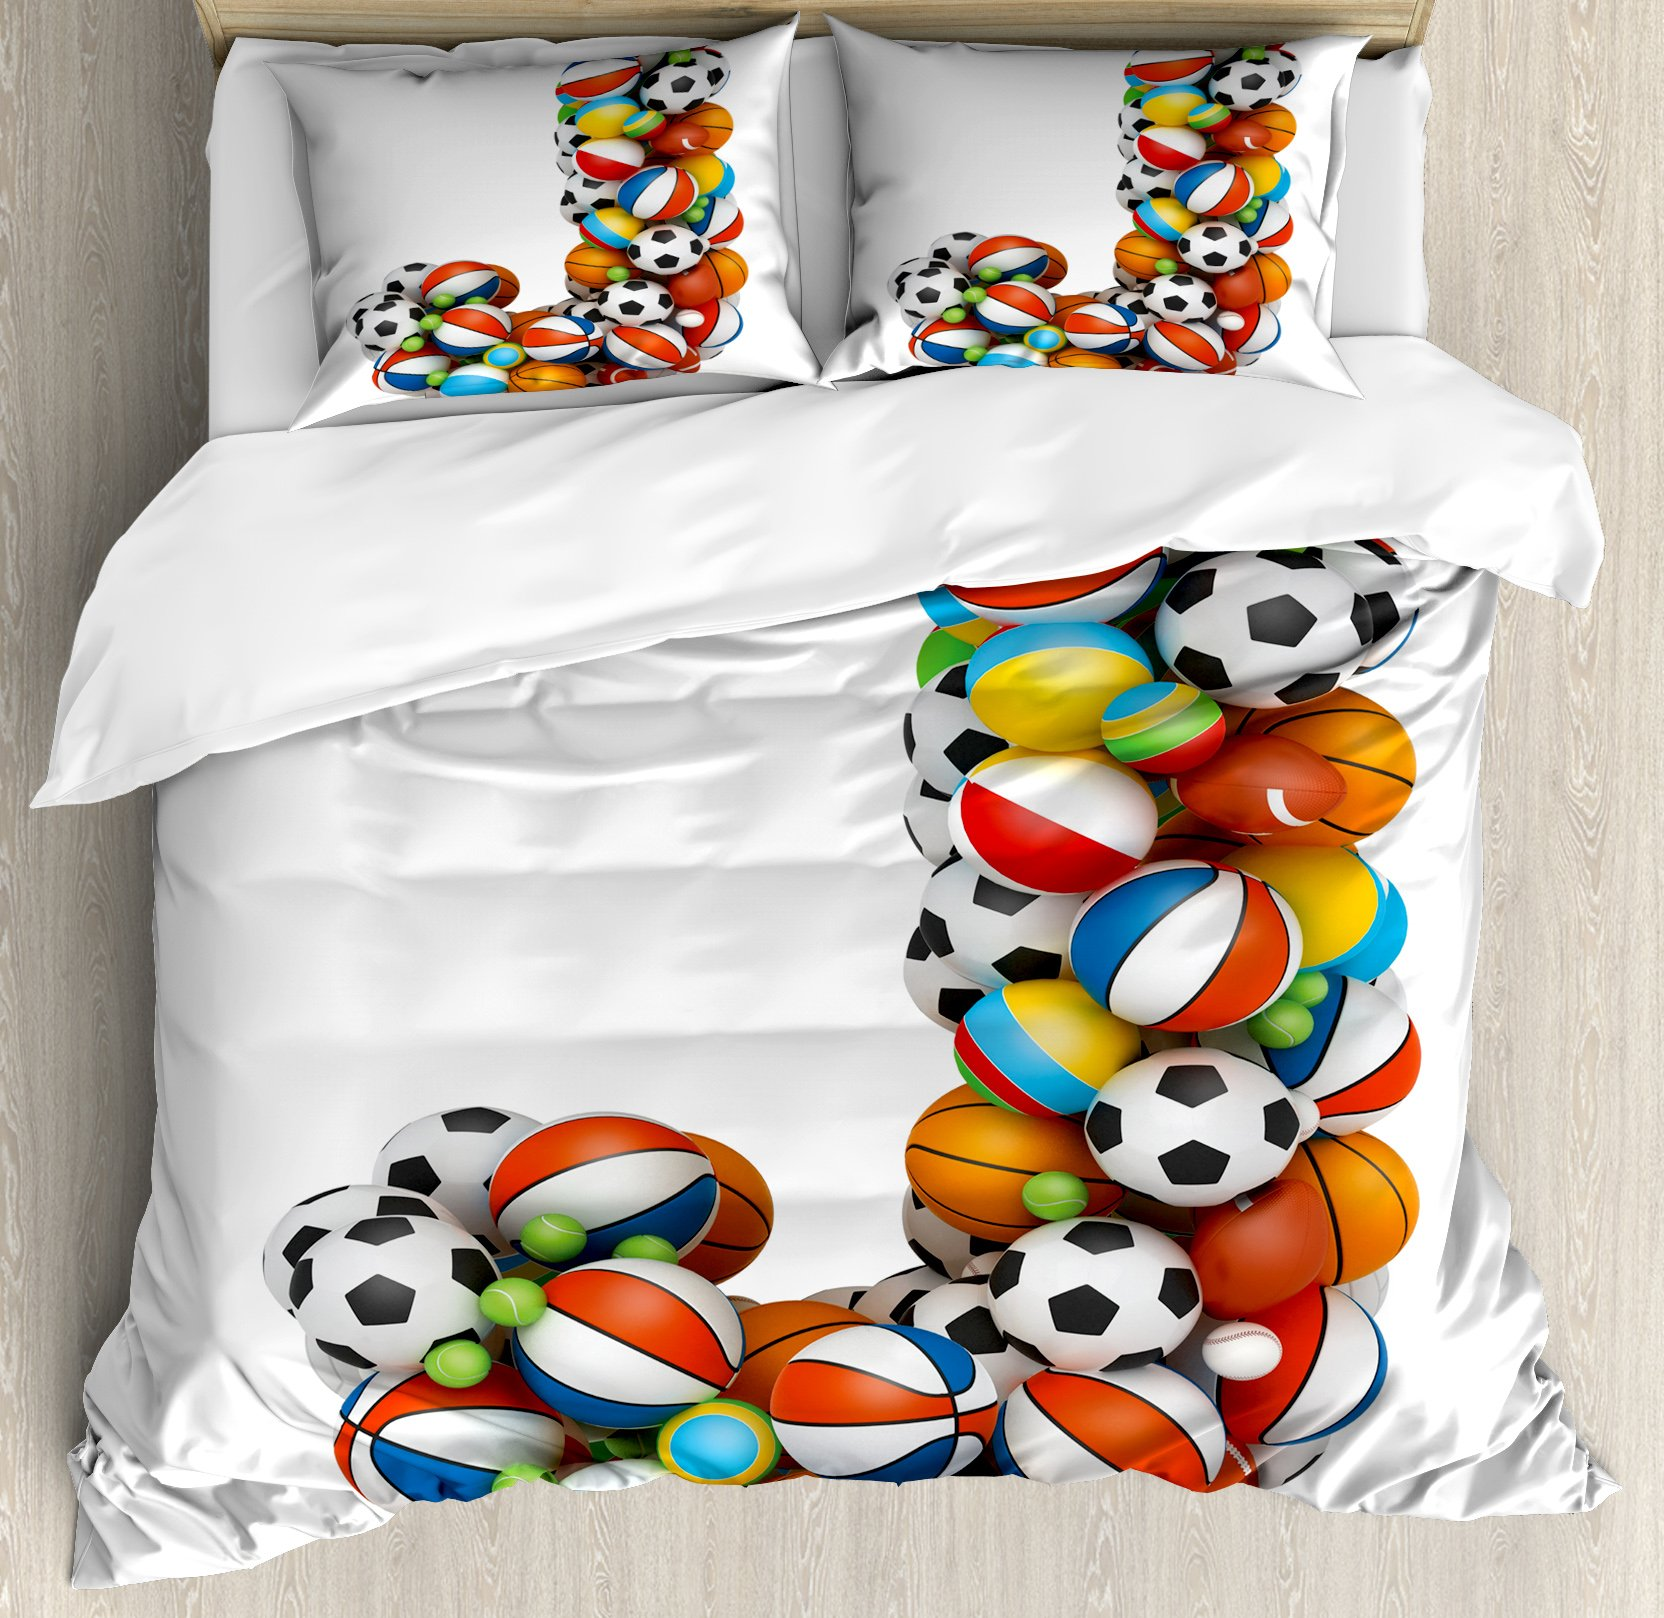 Letter J Duvet Cover Set Queen Size by Ambesonne, Letter J Capitalized Sporting Goods Basketball Football Pigskin Fun Games Design, Decorative 3 Piece Bedding Set with 2 Pillow Shams, Multicolor